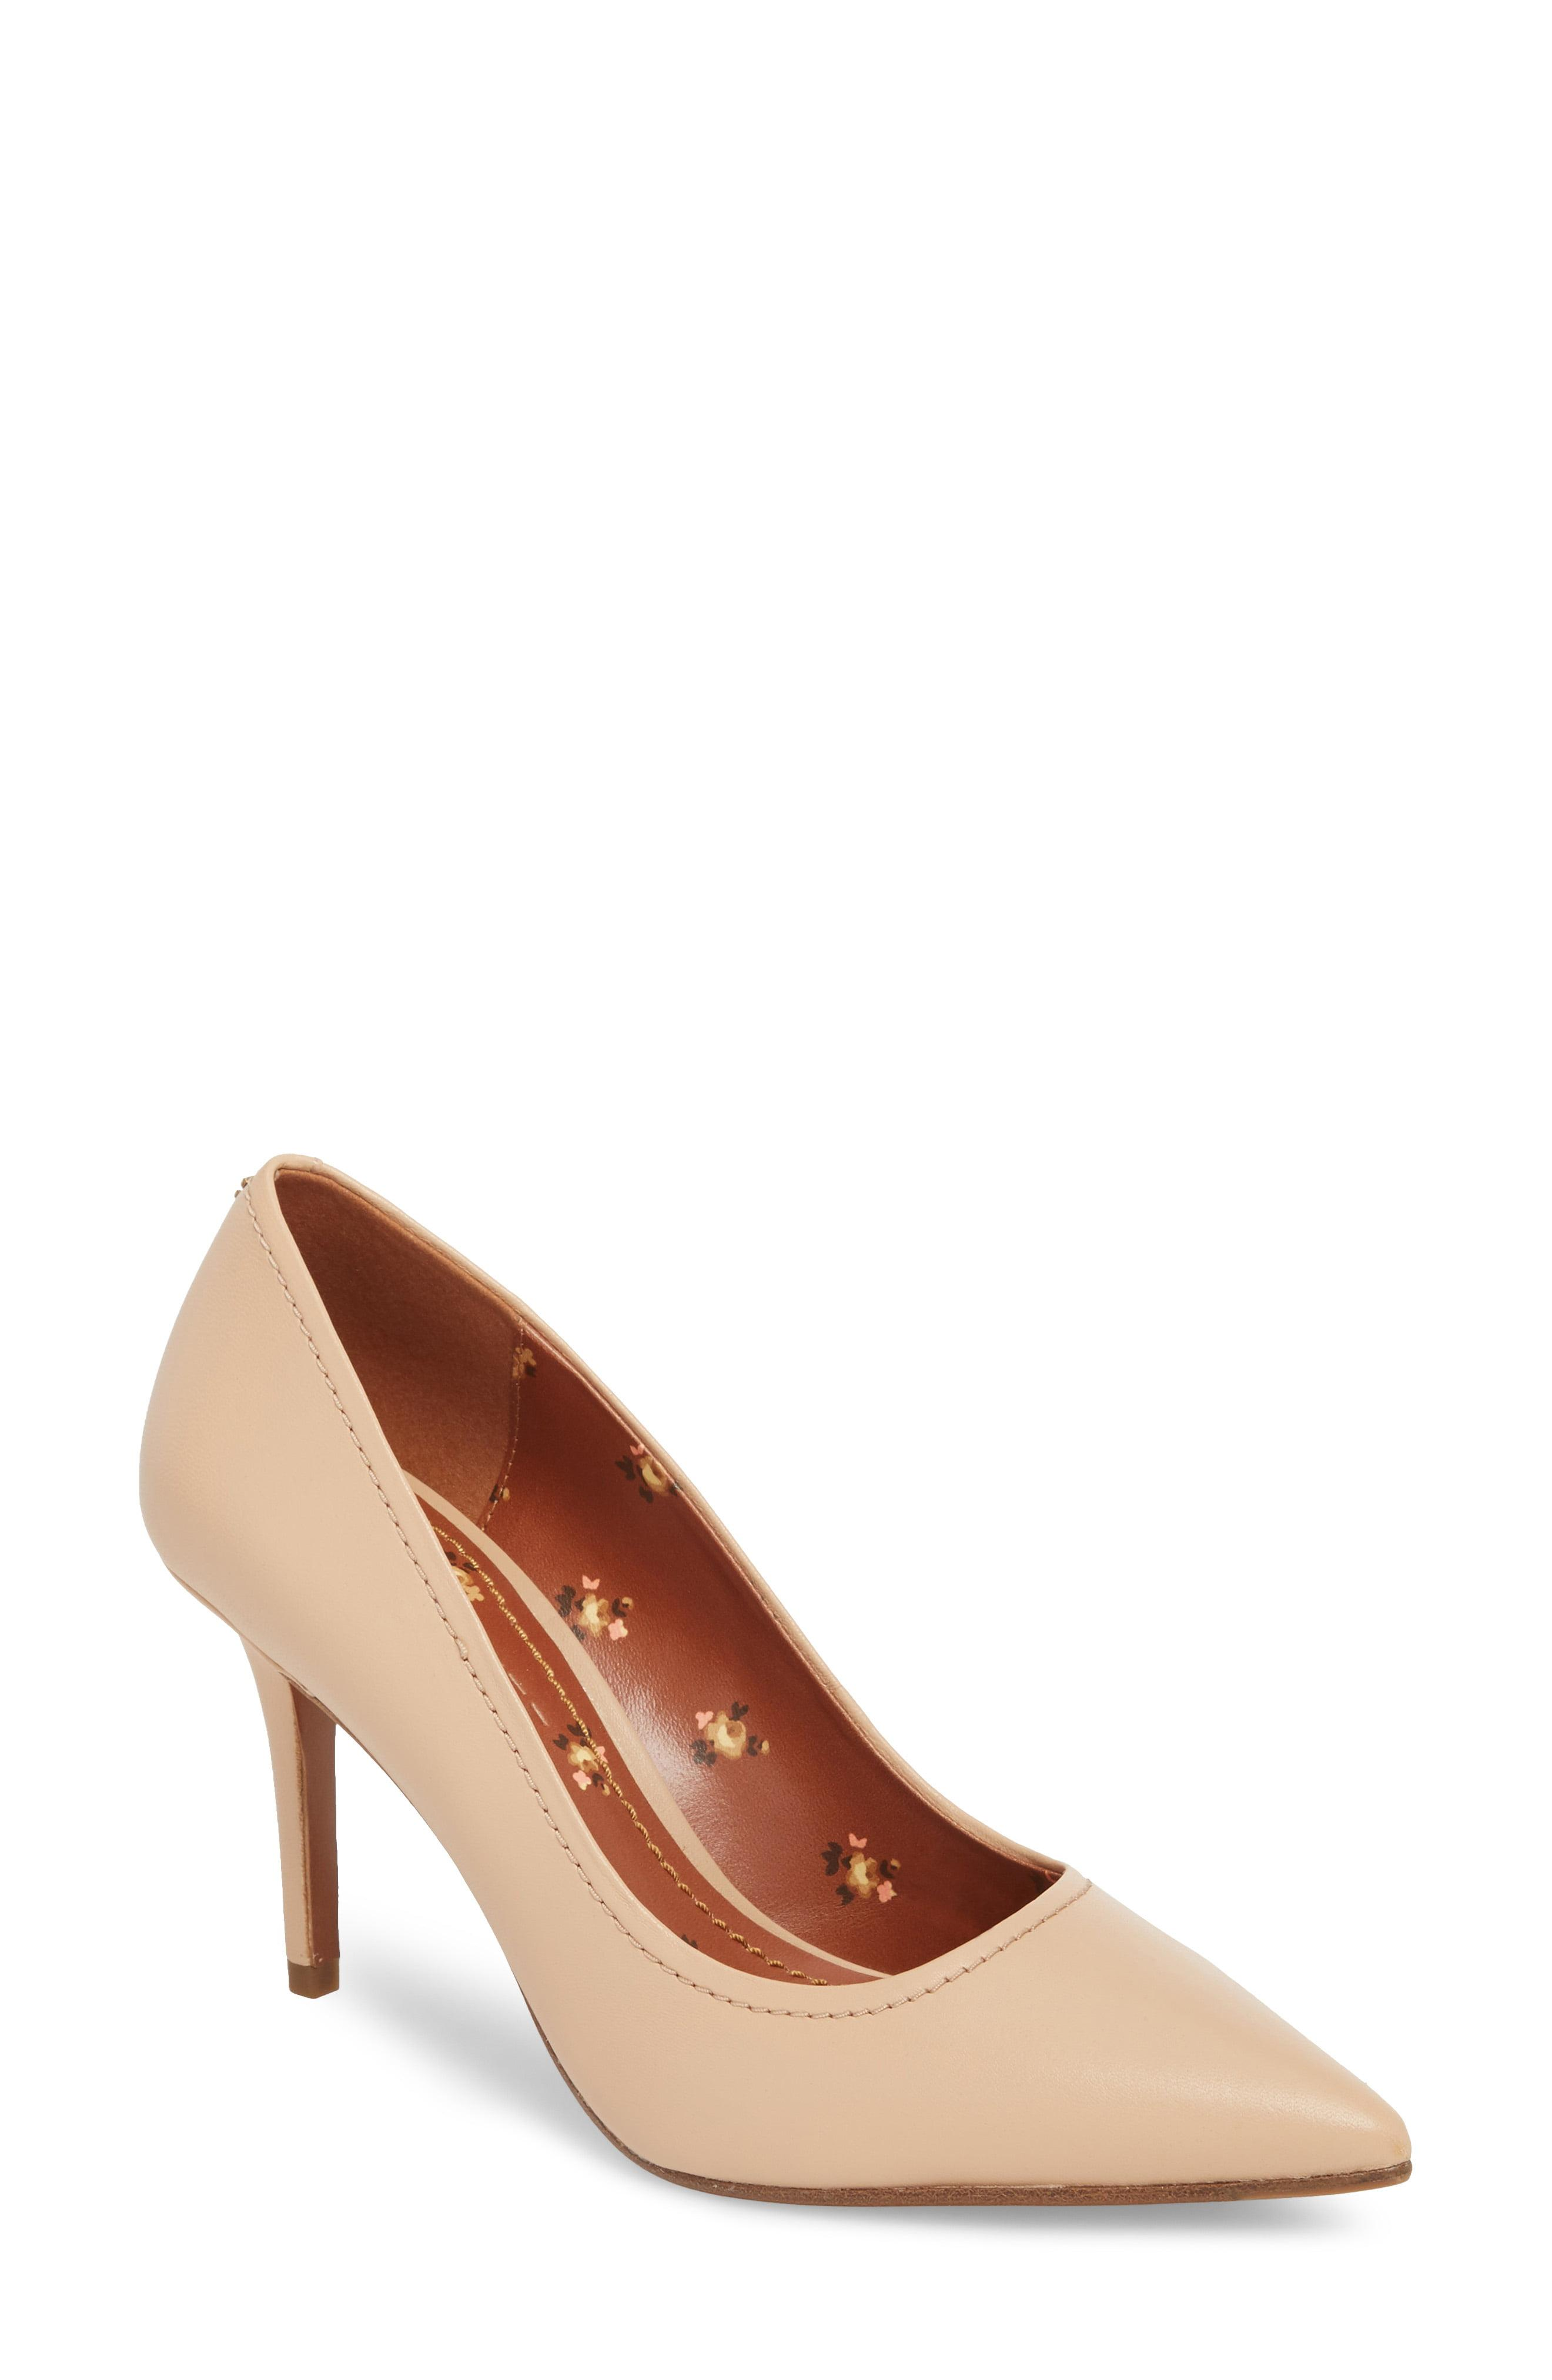 09ce88c4875 COACH. Women's Waverly High Heel Pump